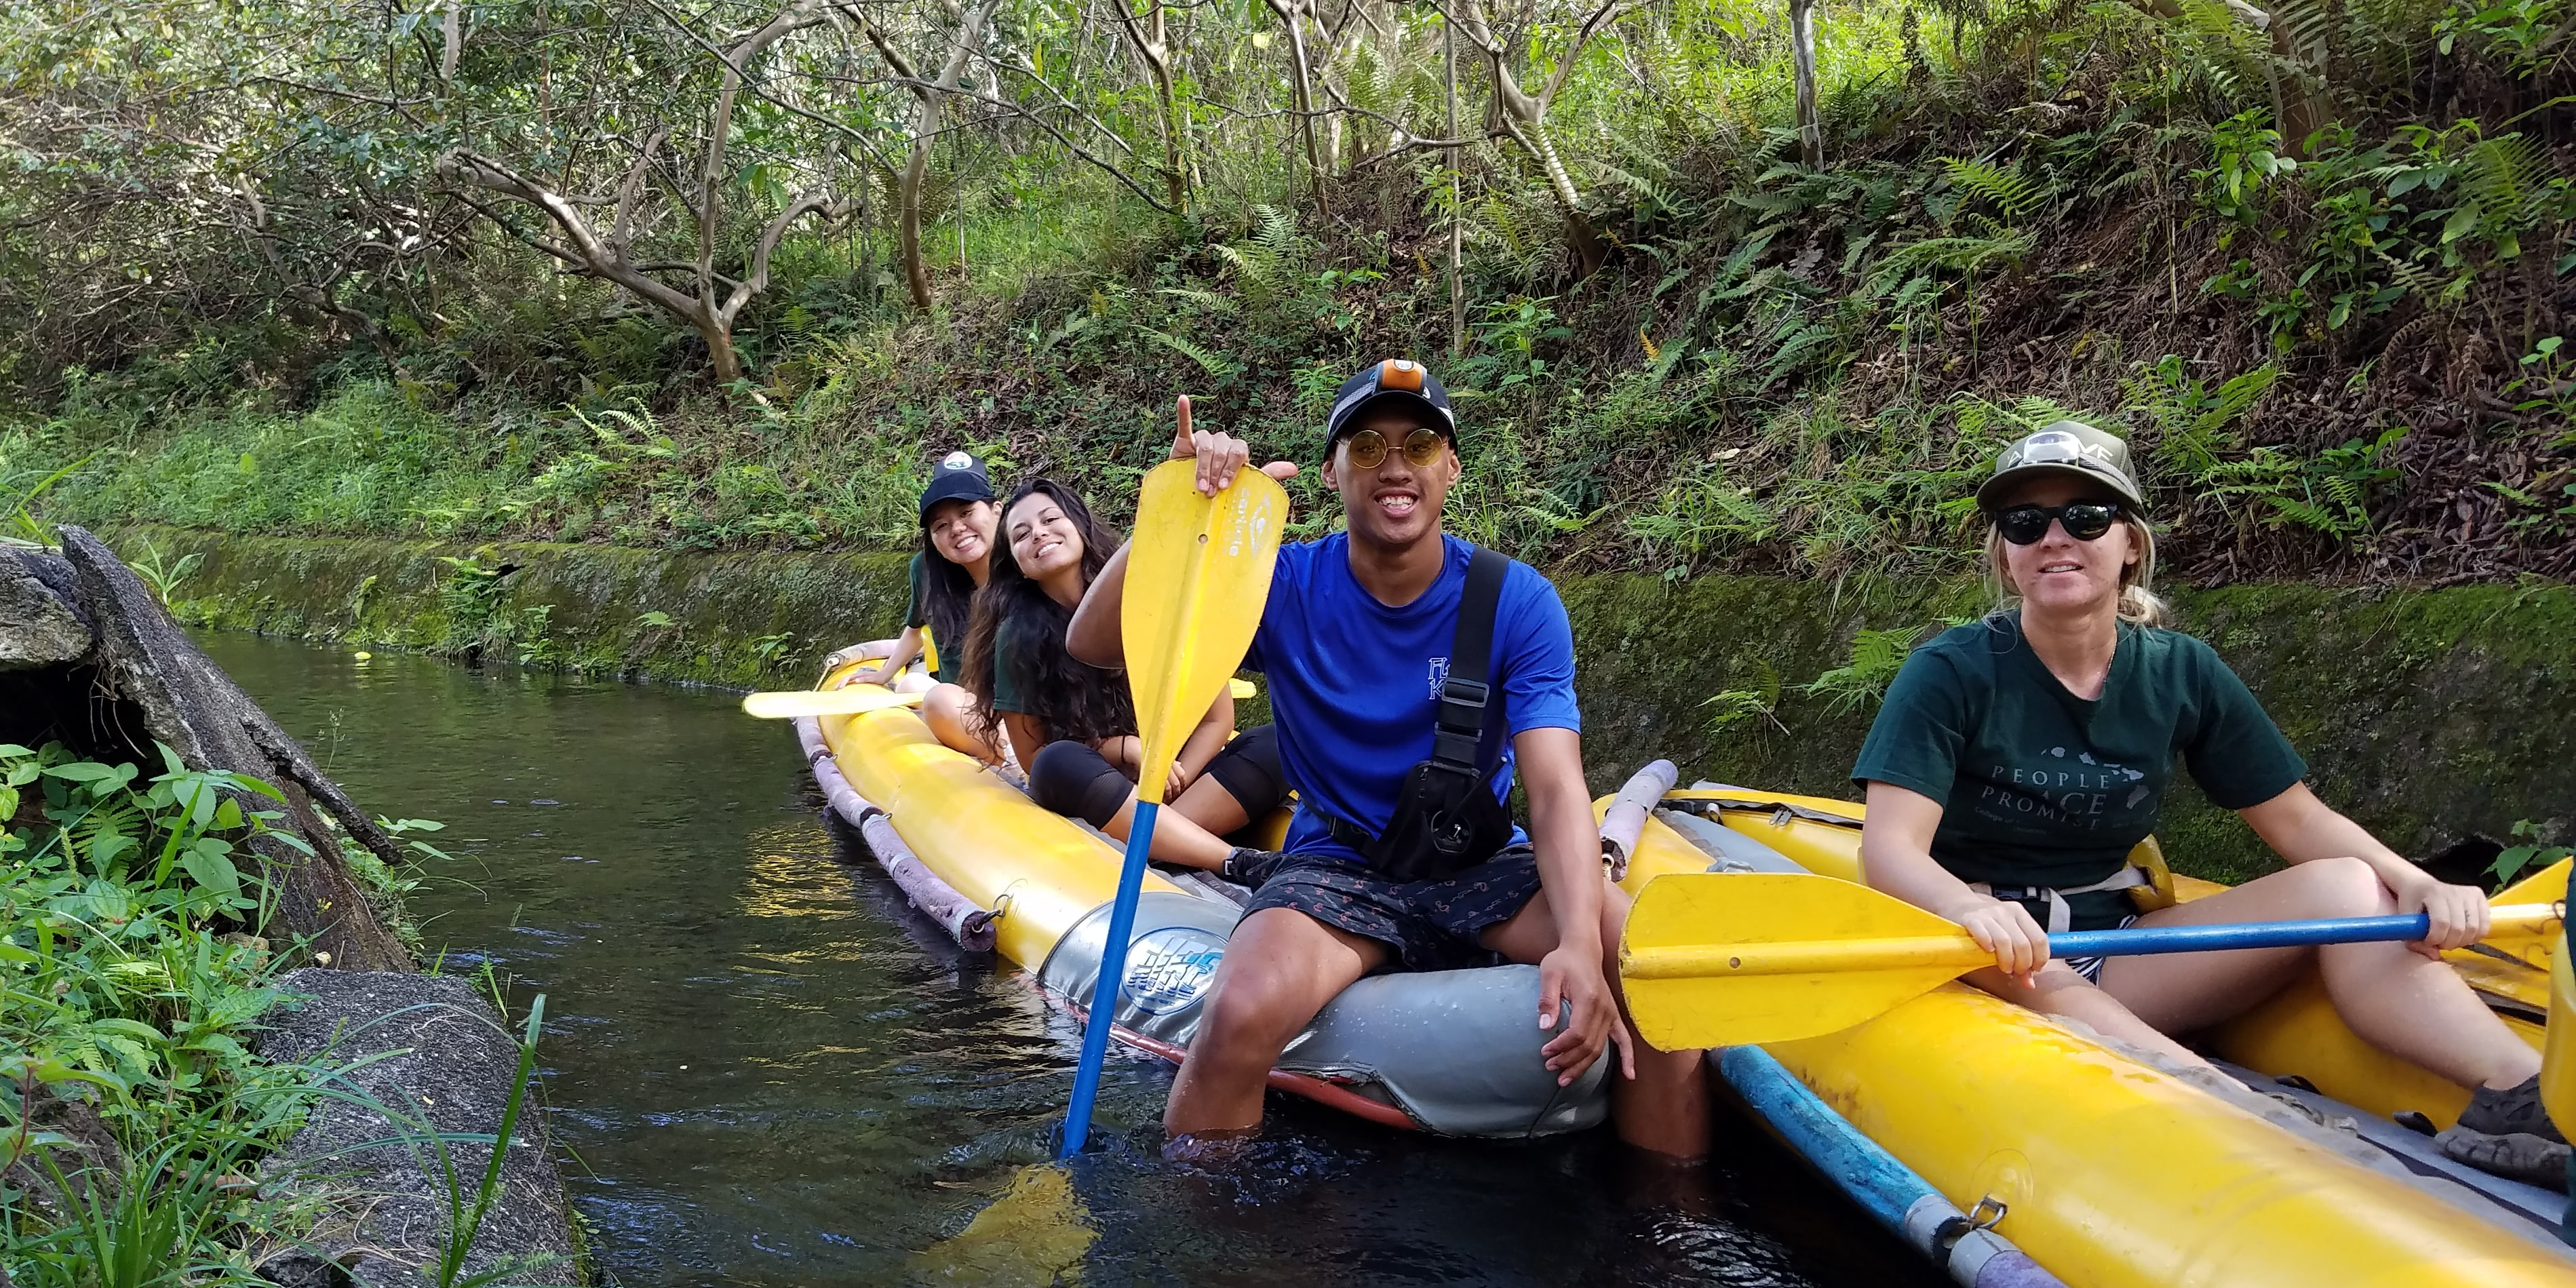 Students floating through an irrigation ditch on inflatable boats.